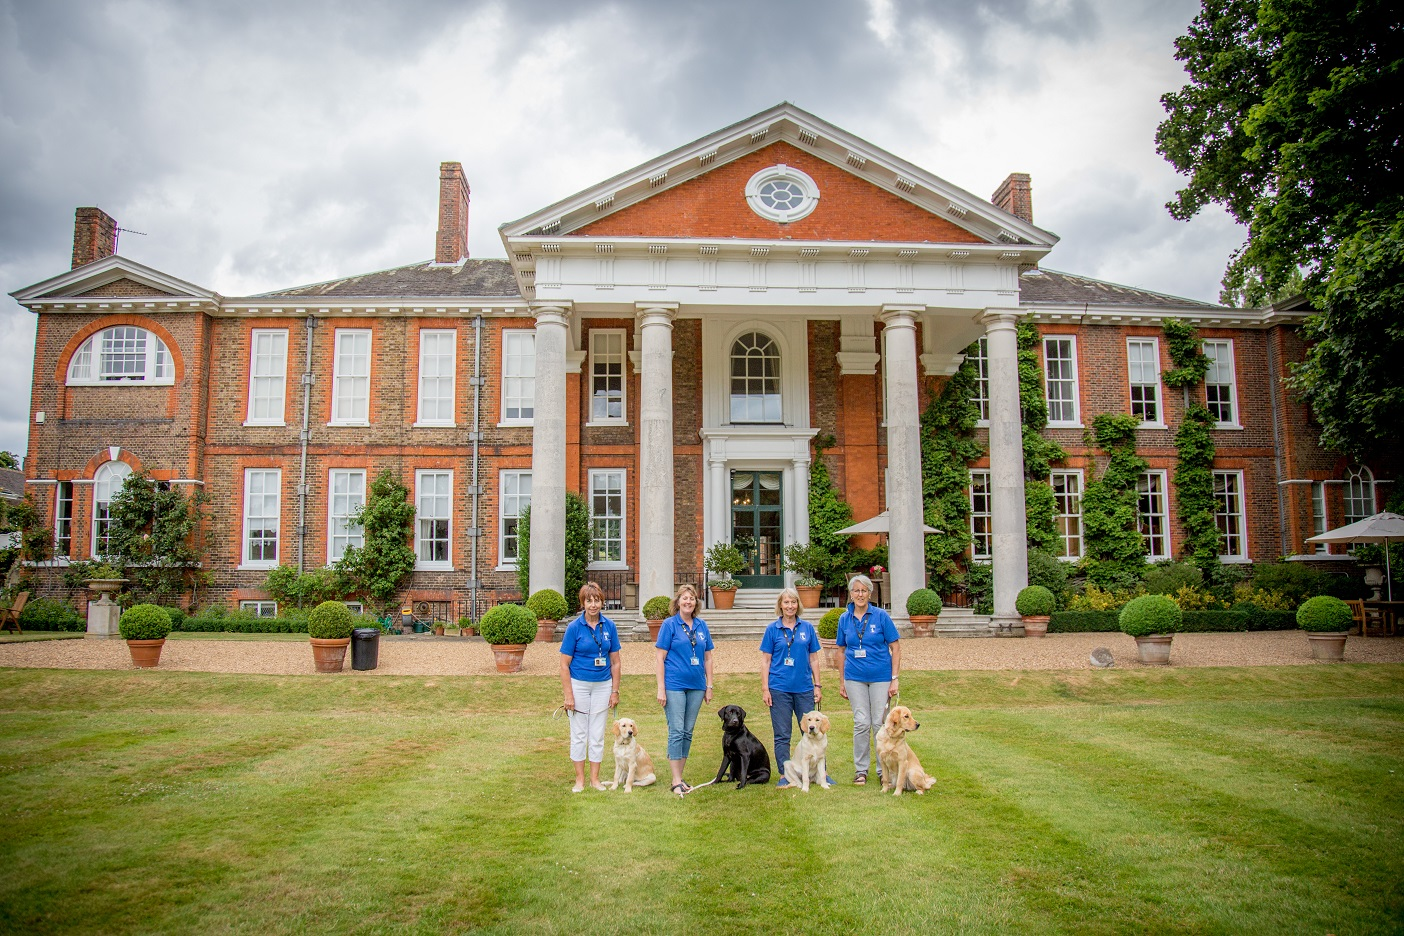 Garden Party for Guide Dogs at Trumpeters' House